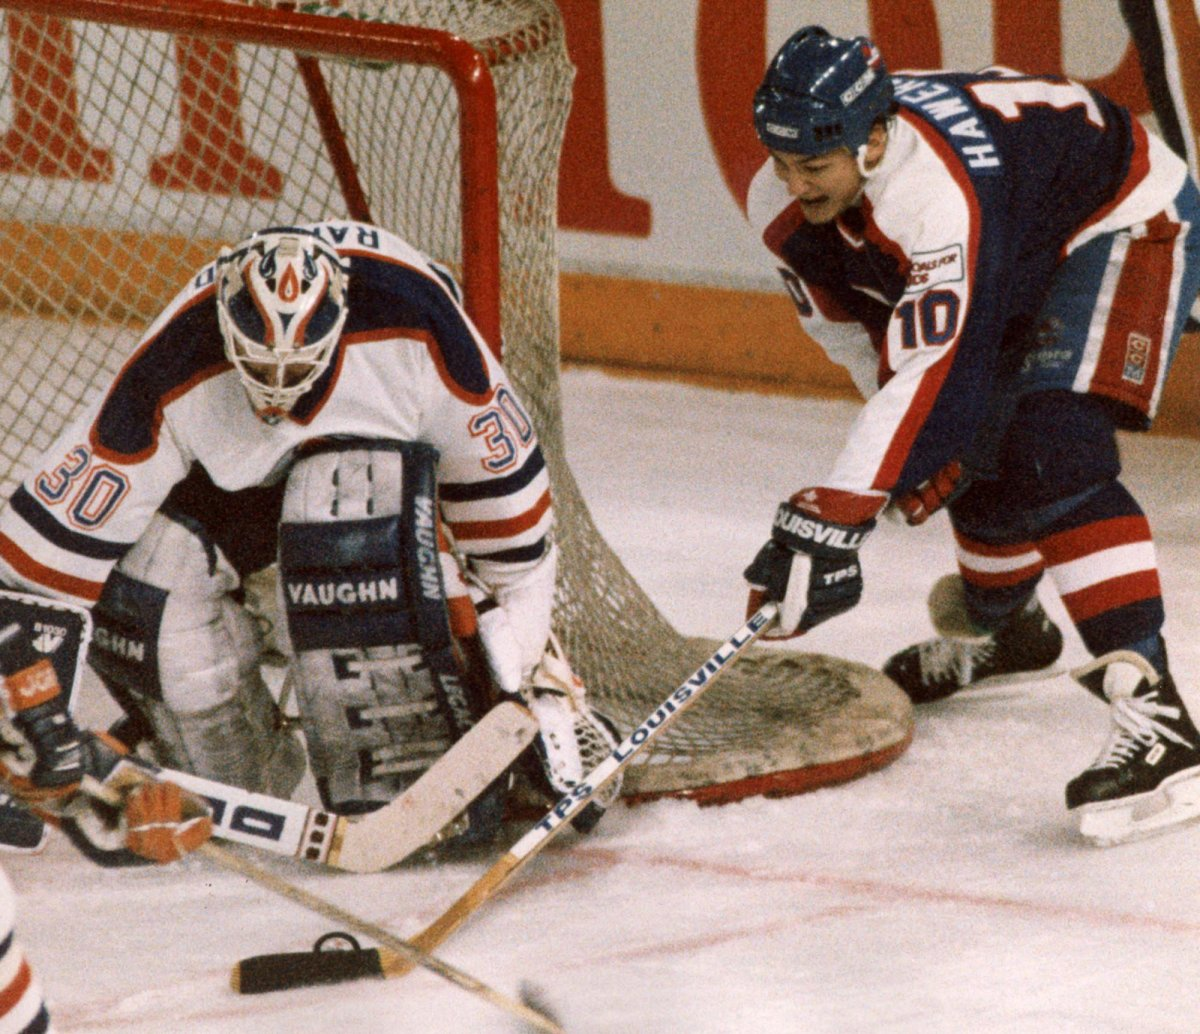 The Winnipeg Jets' Dale Hawerchuk tries a wraparound move on the Edmonton Oilers' Bill Ranford during NHL action in Edmonton on April 4, 1990.